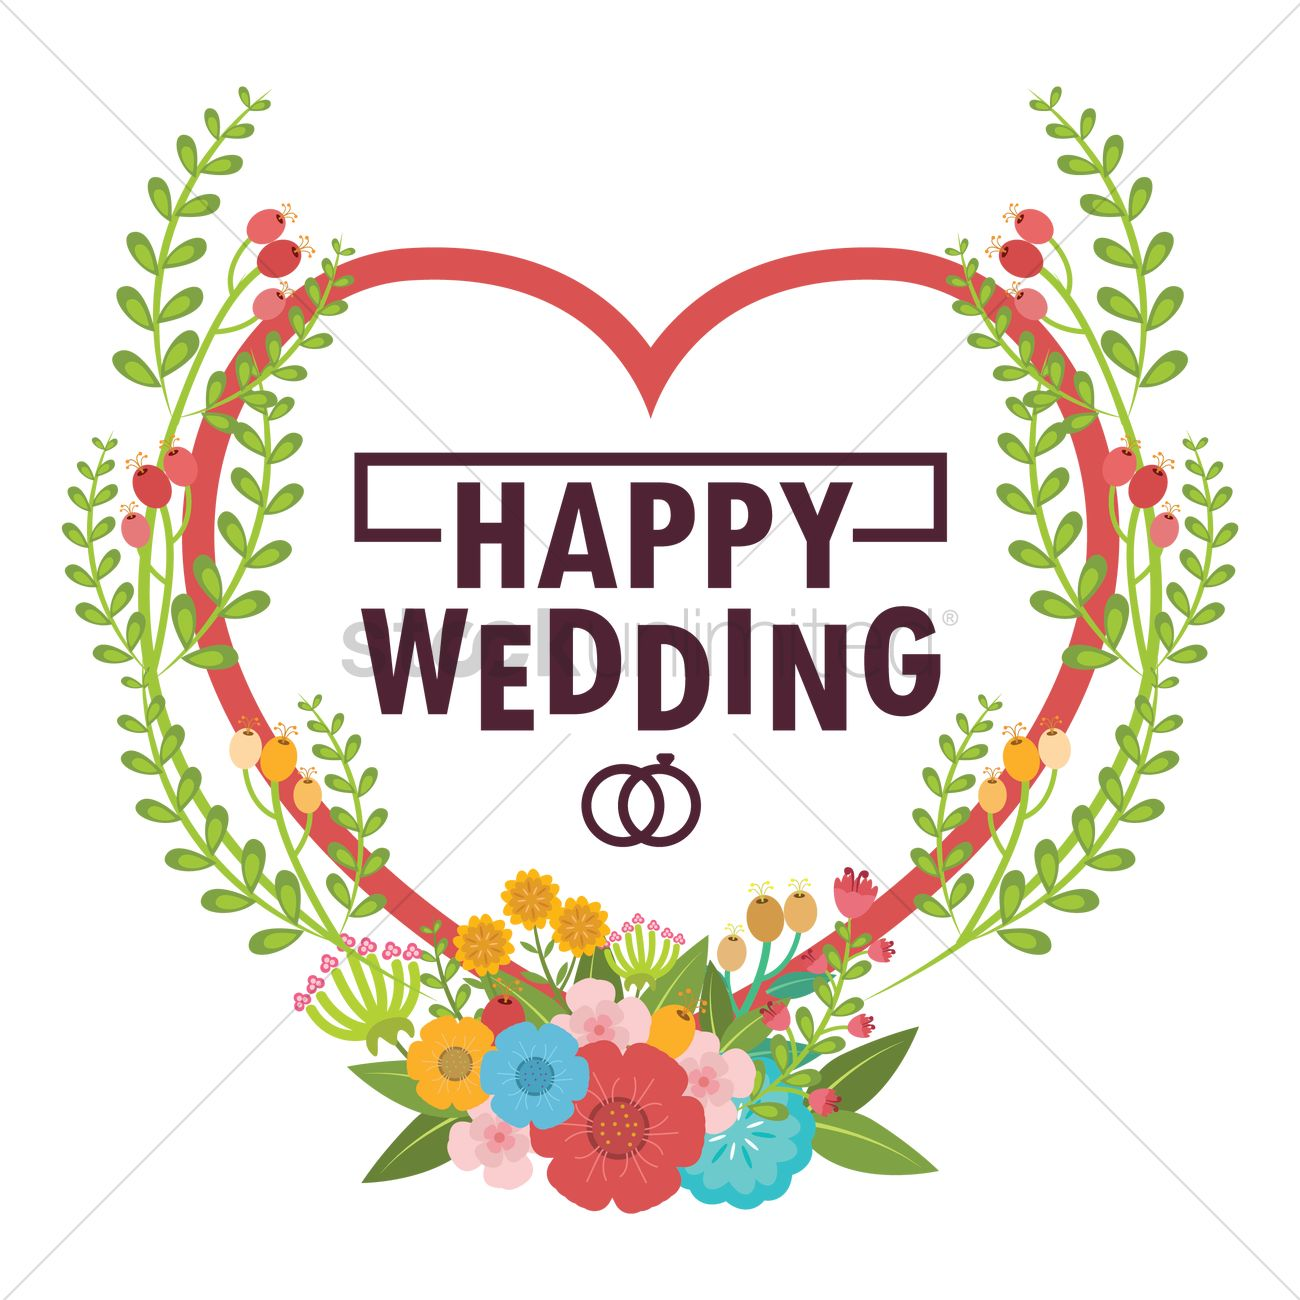 happy wedding vector image 1797297 stockunlimited wedding anniversary clip art free wedding anniversary clip art images